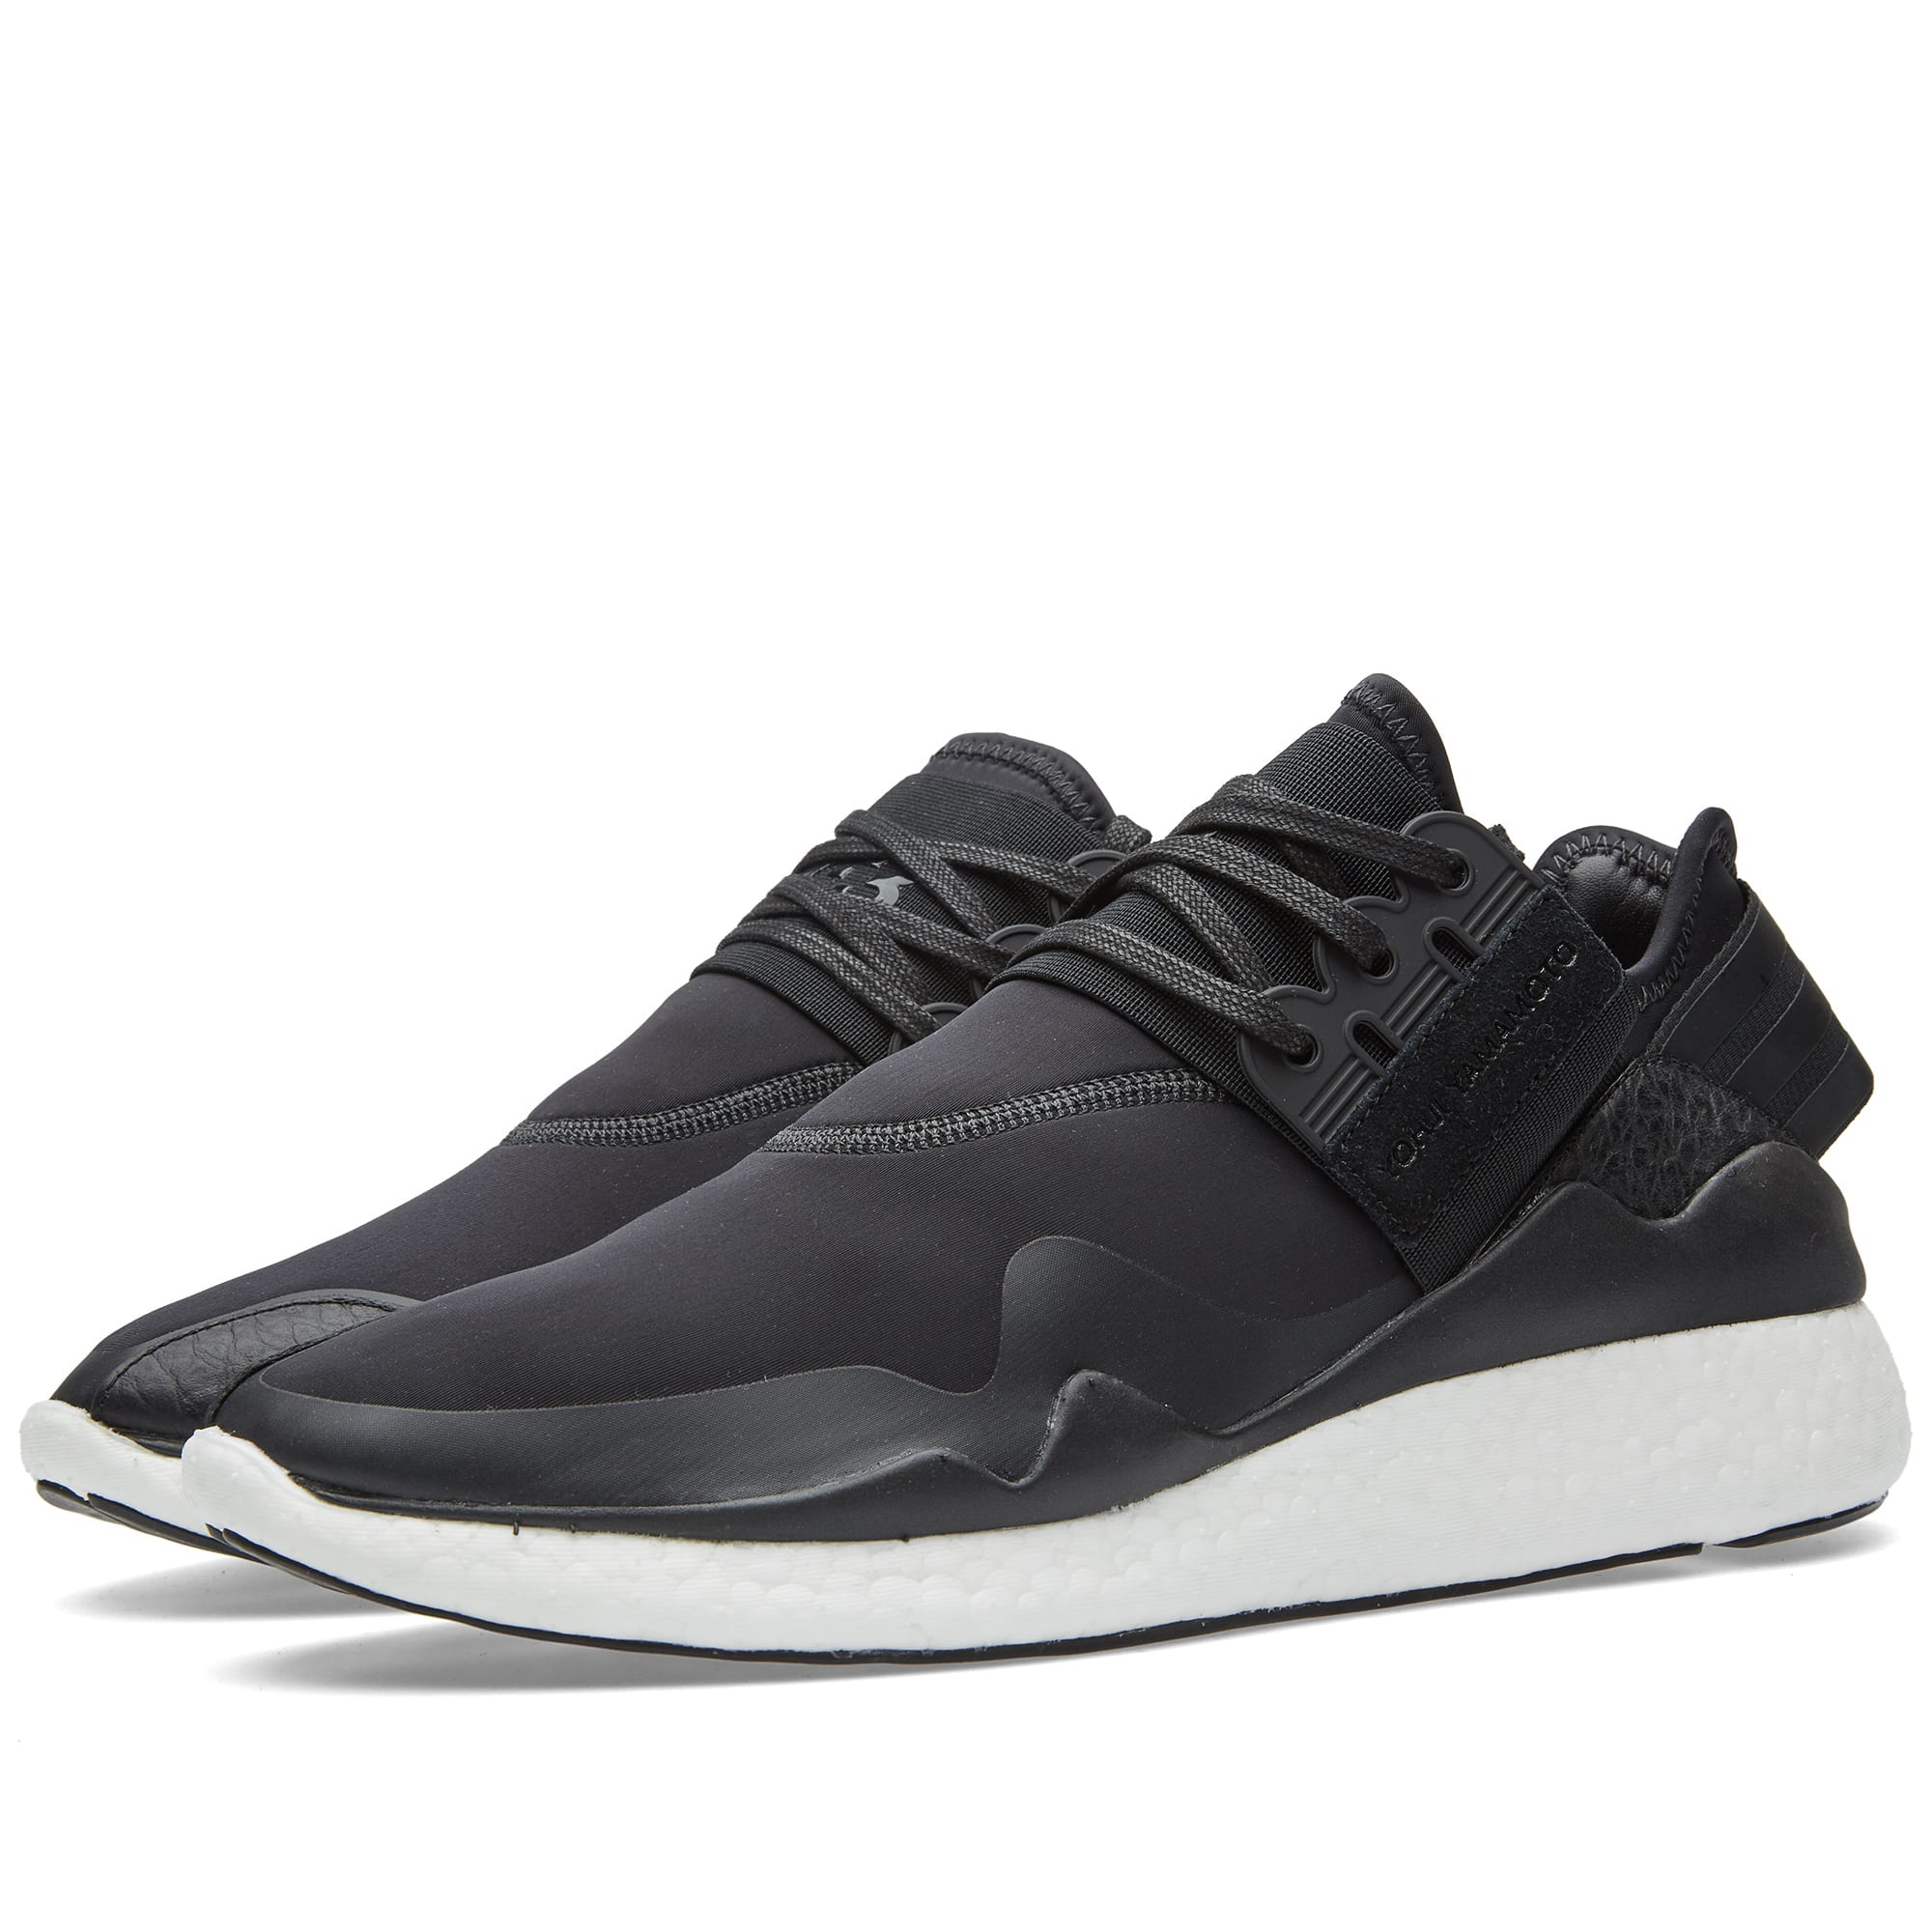 6ad25aa97a6bd Y-3 Retro Boost Black